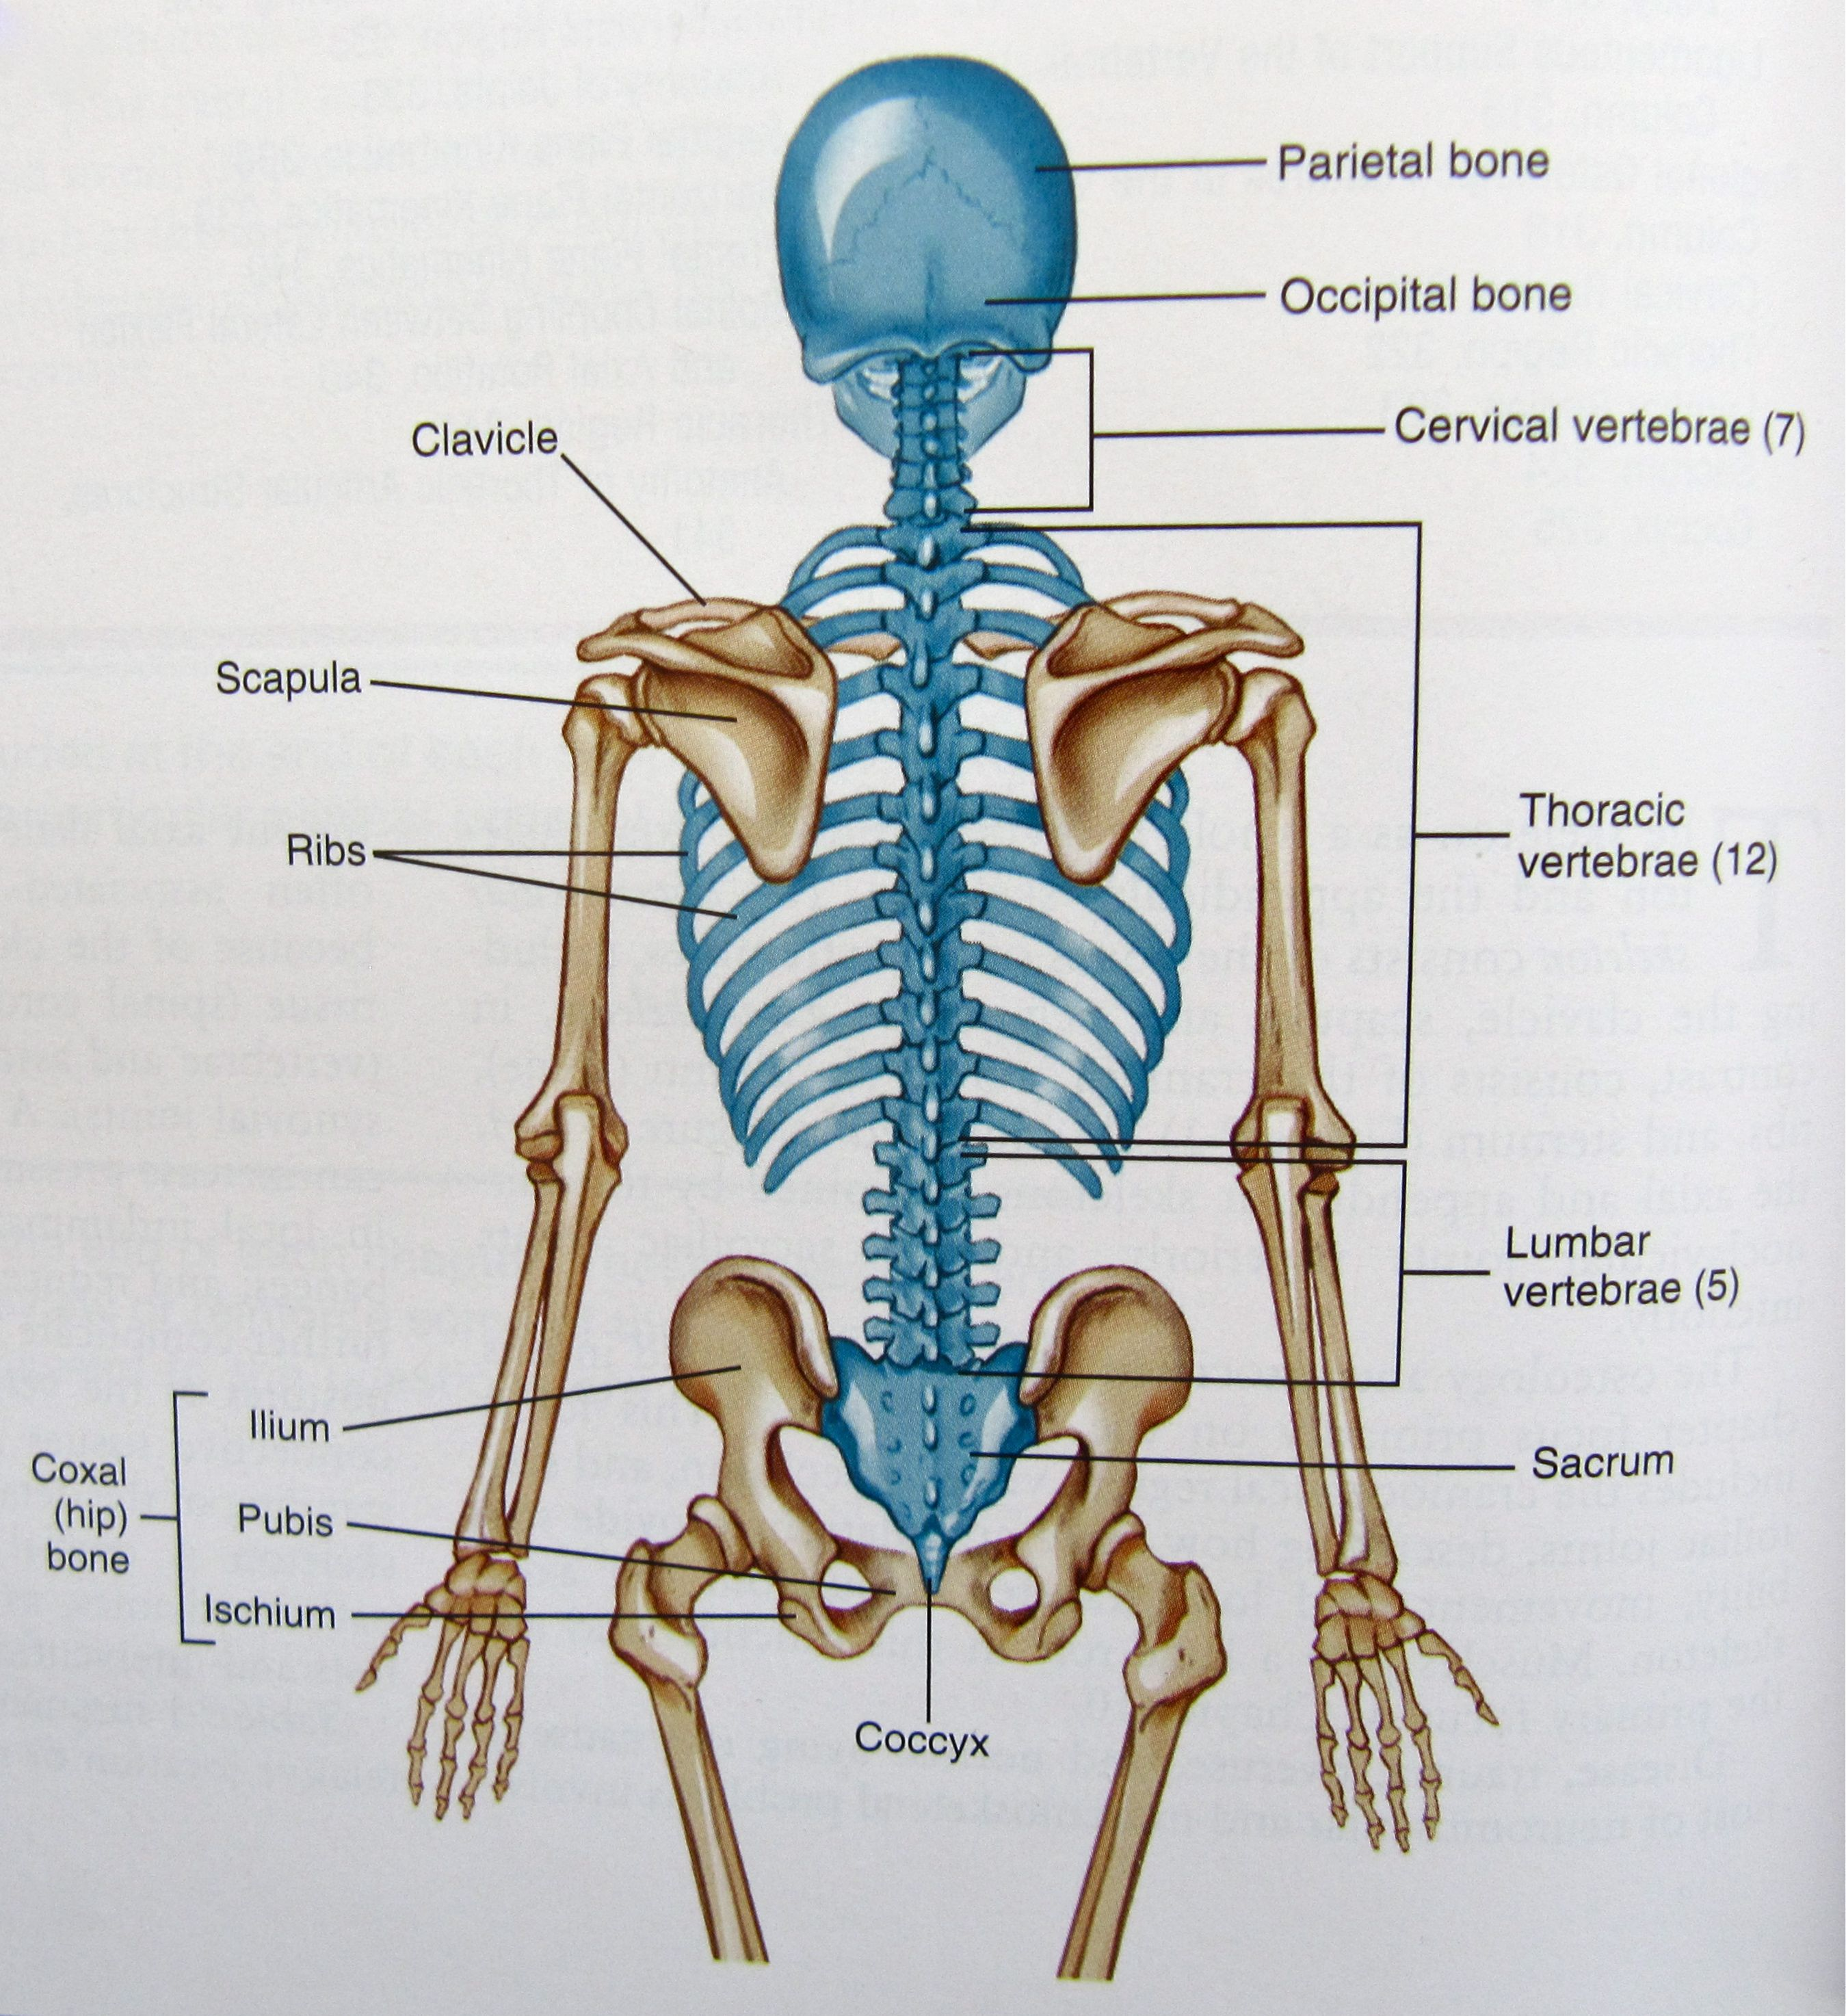 medium resolution of the axial skeleton is the portion of the human skeleton that consists of the bones of